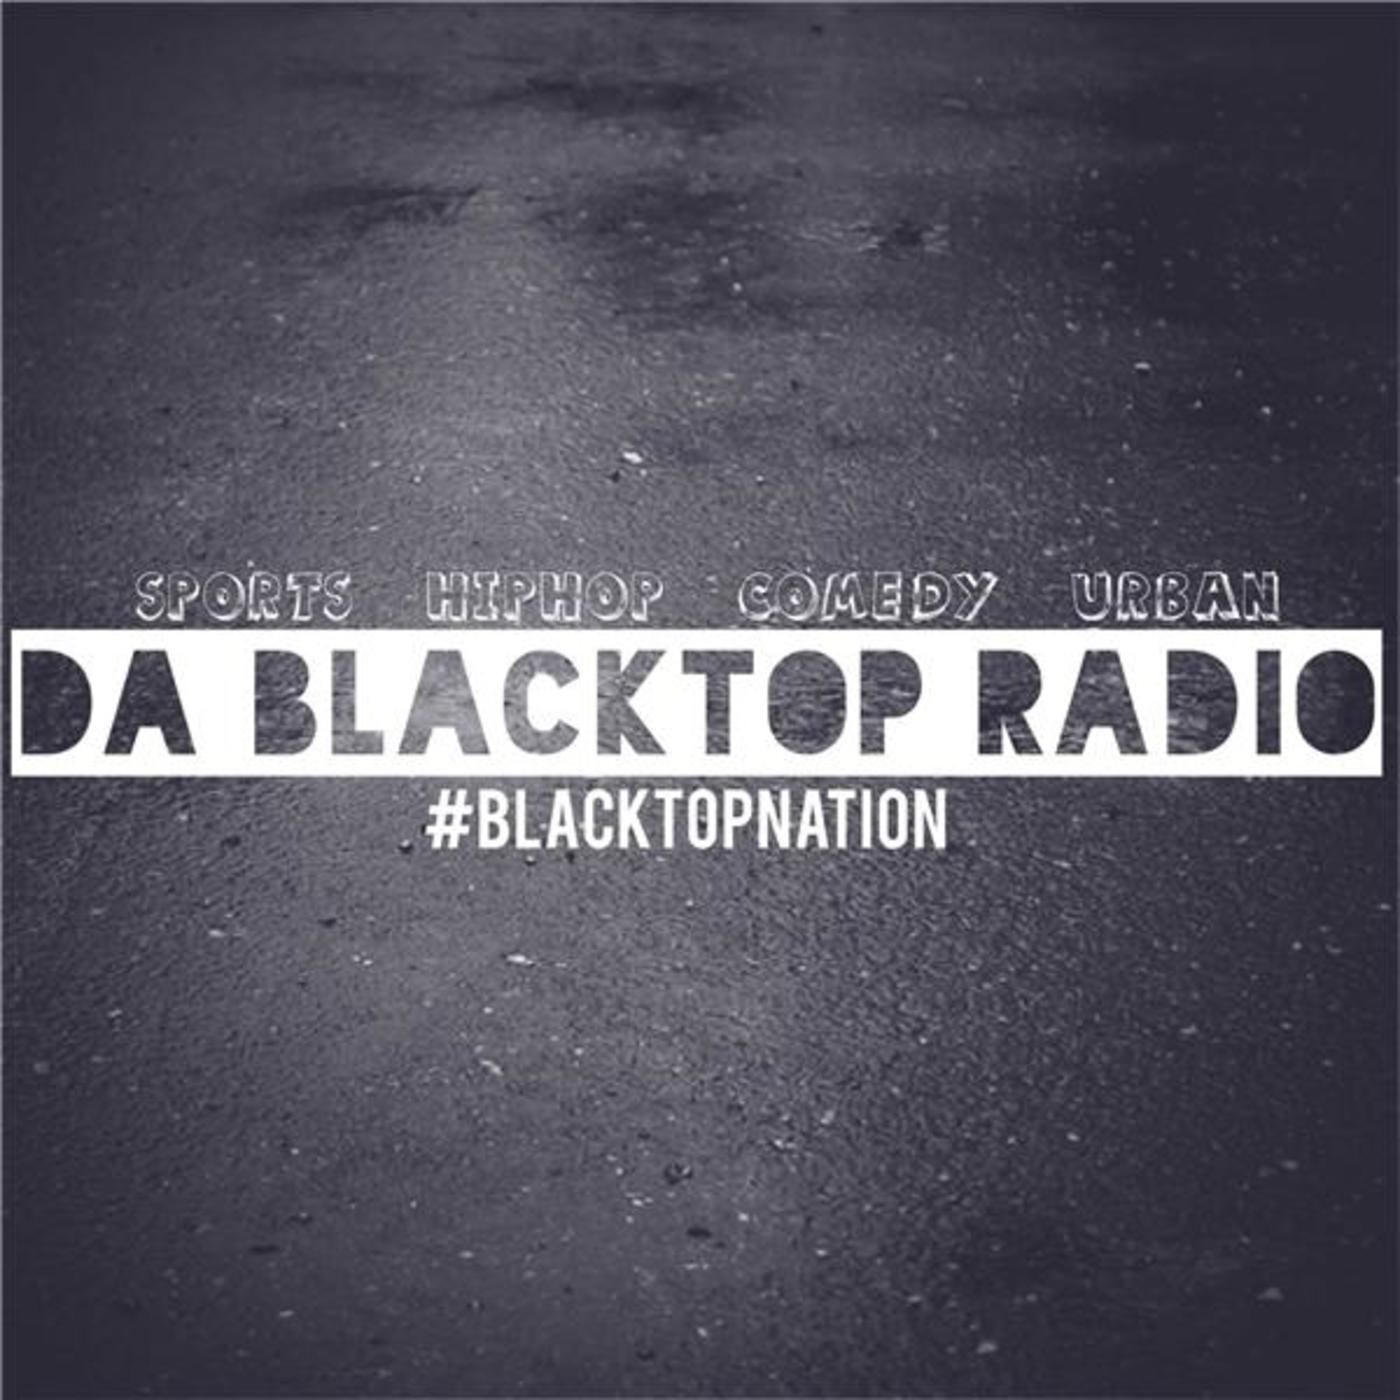 Da Black Top Radio